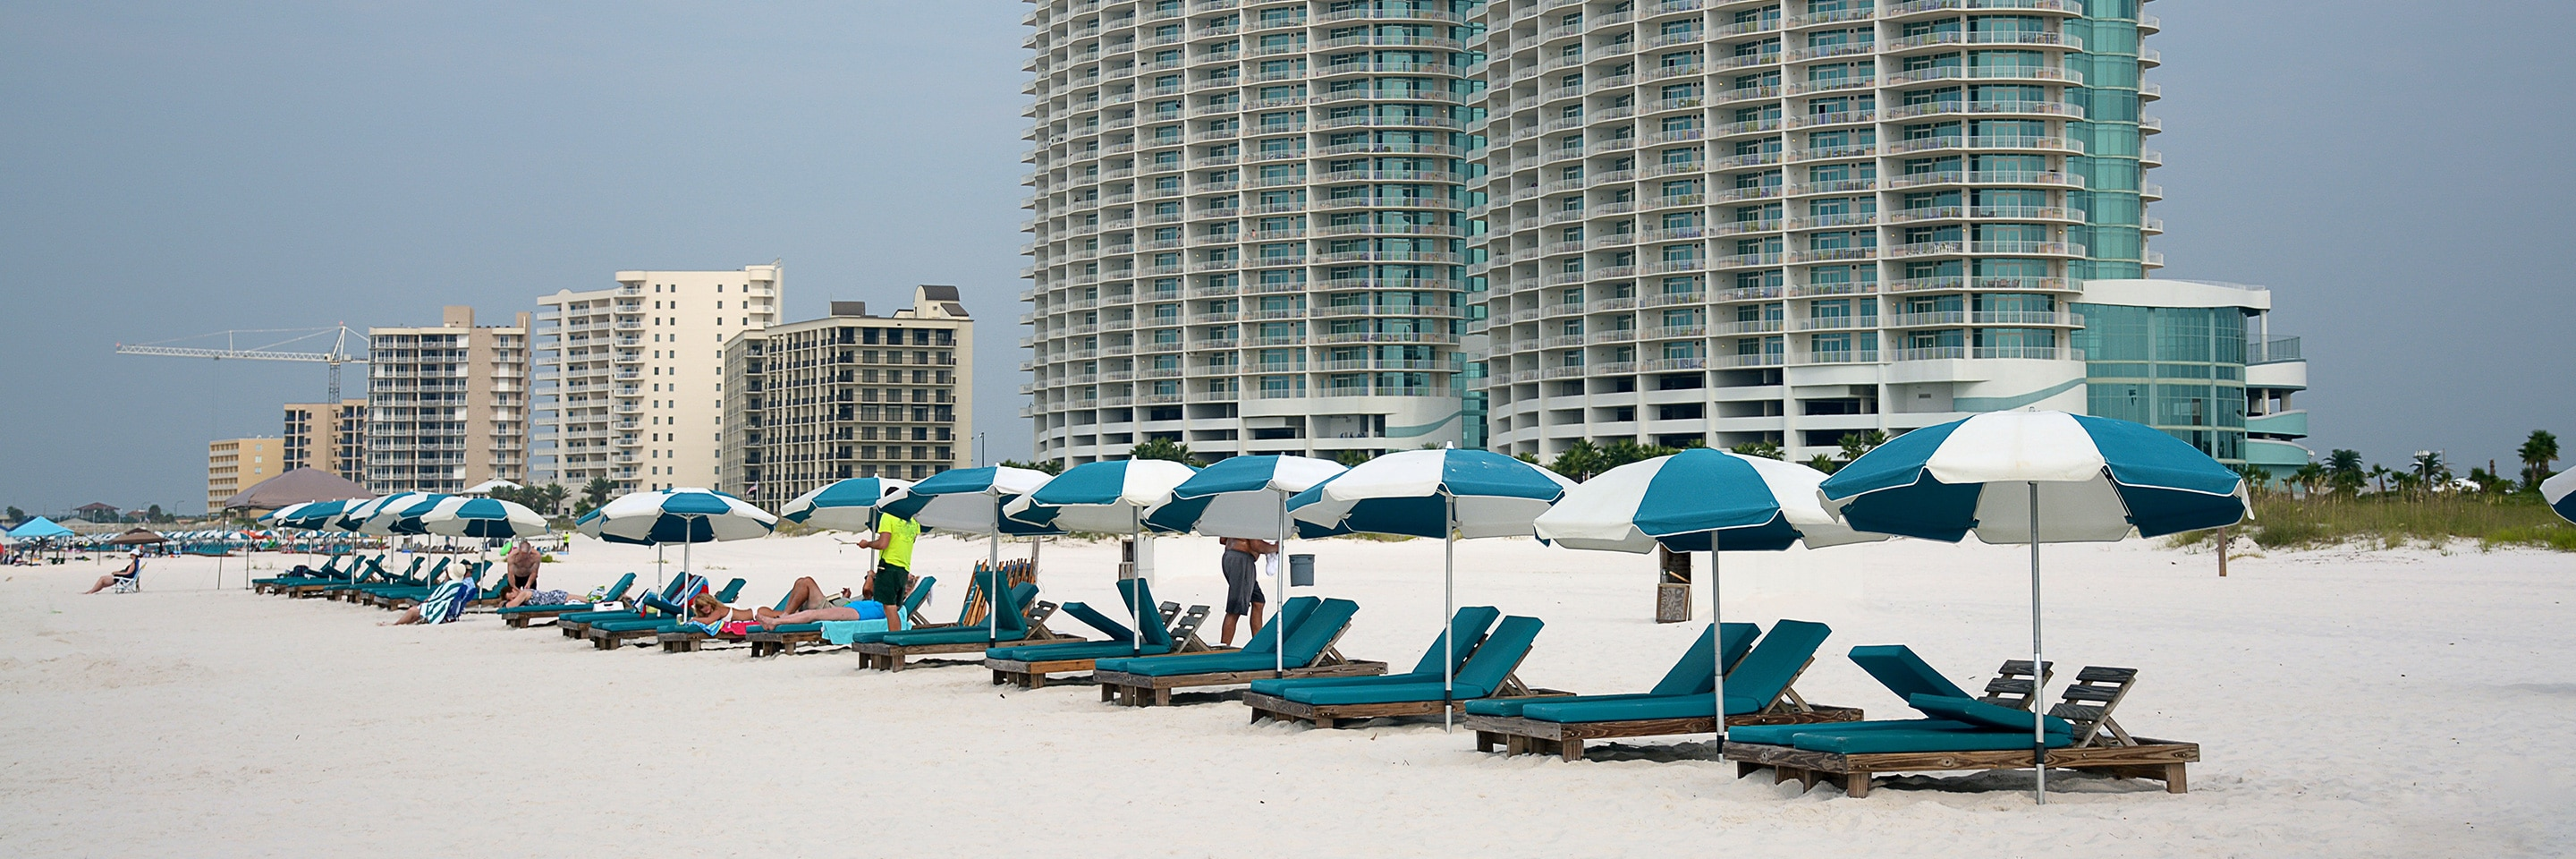 Hotels In Orange Beach